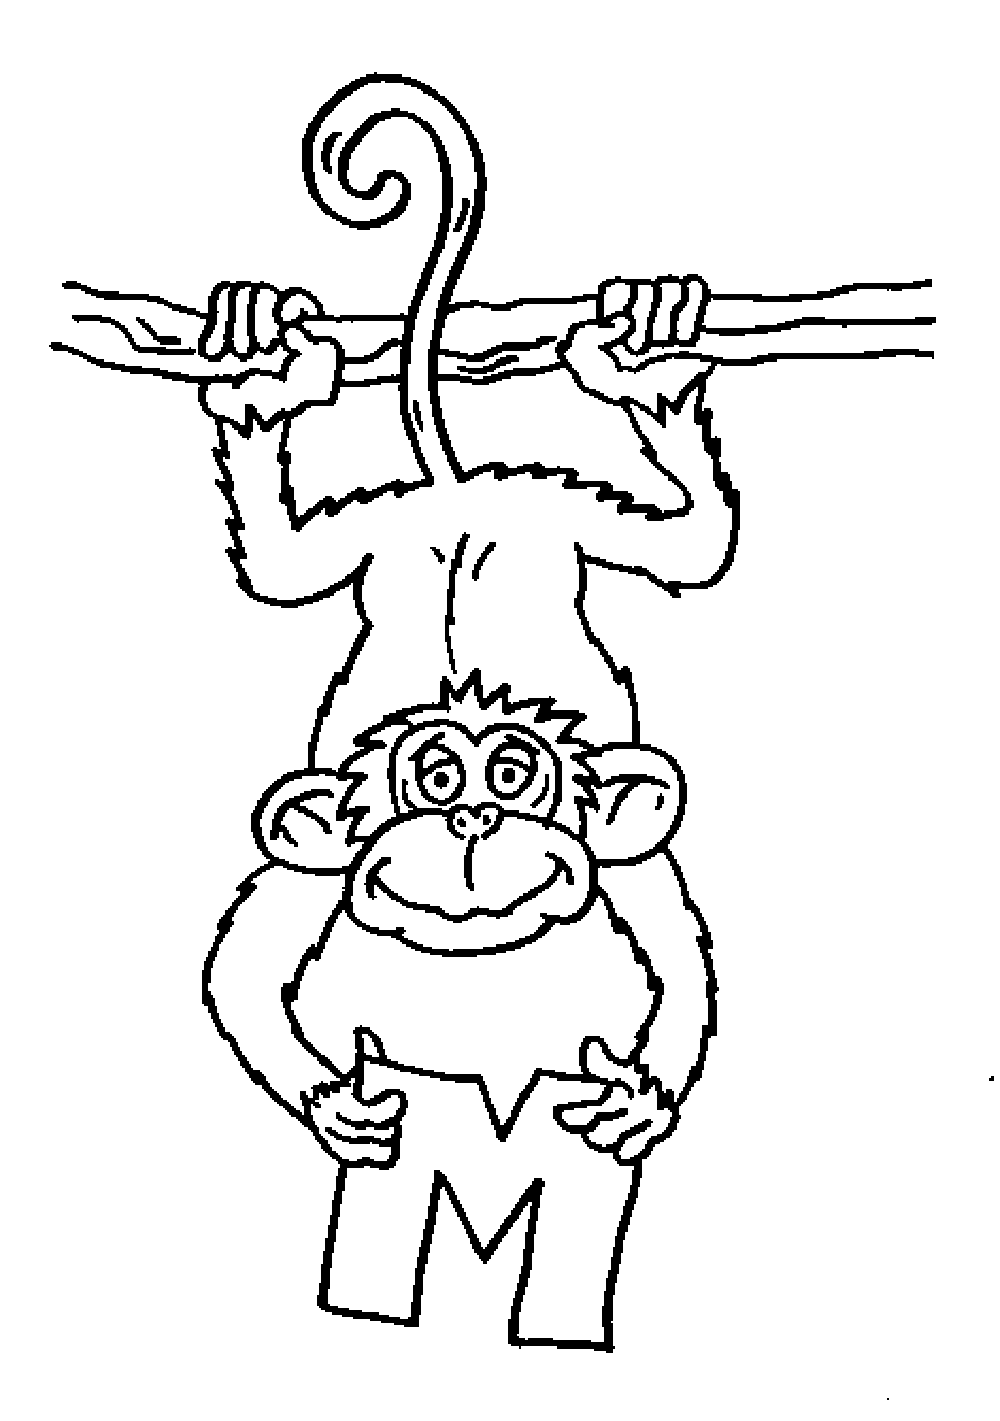 monkey-coloring-pages-printable | | BestAppsForKids.com